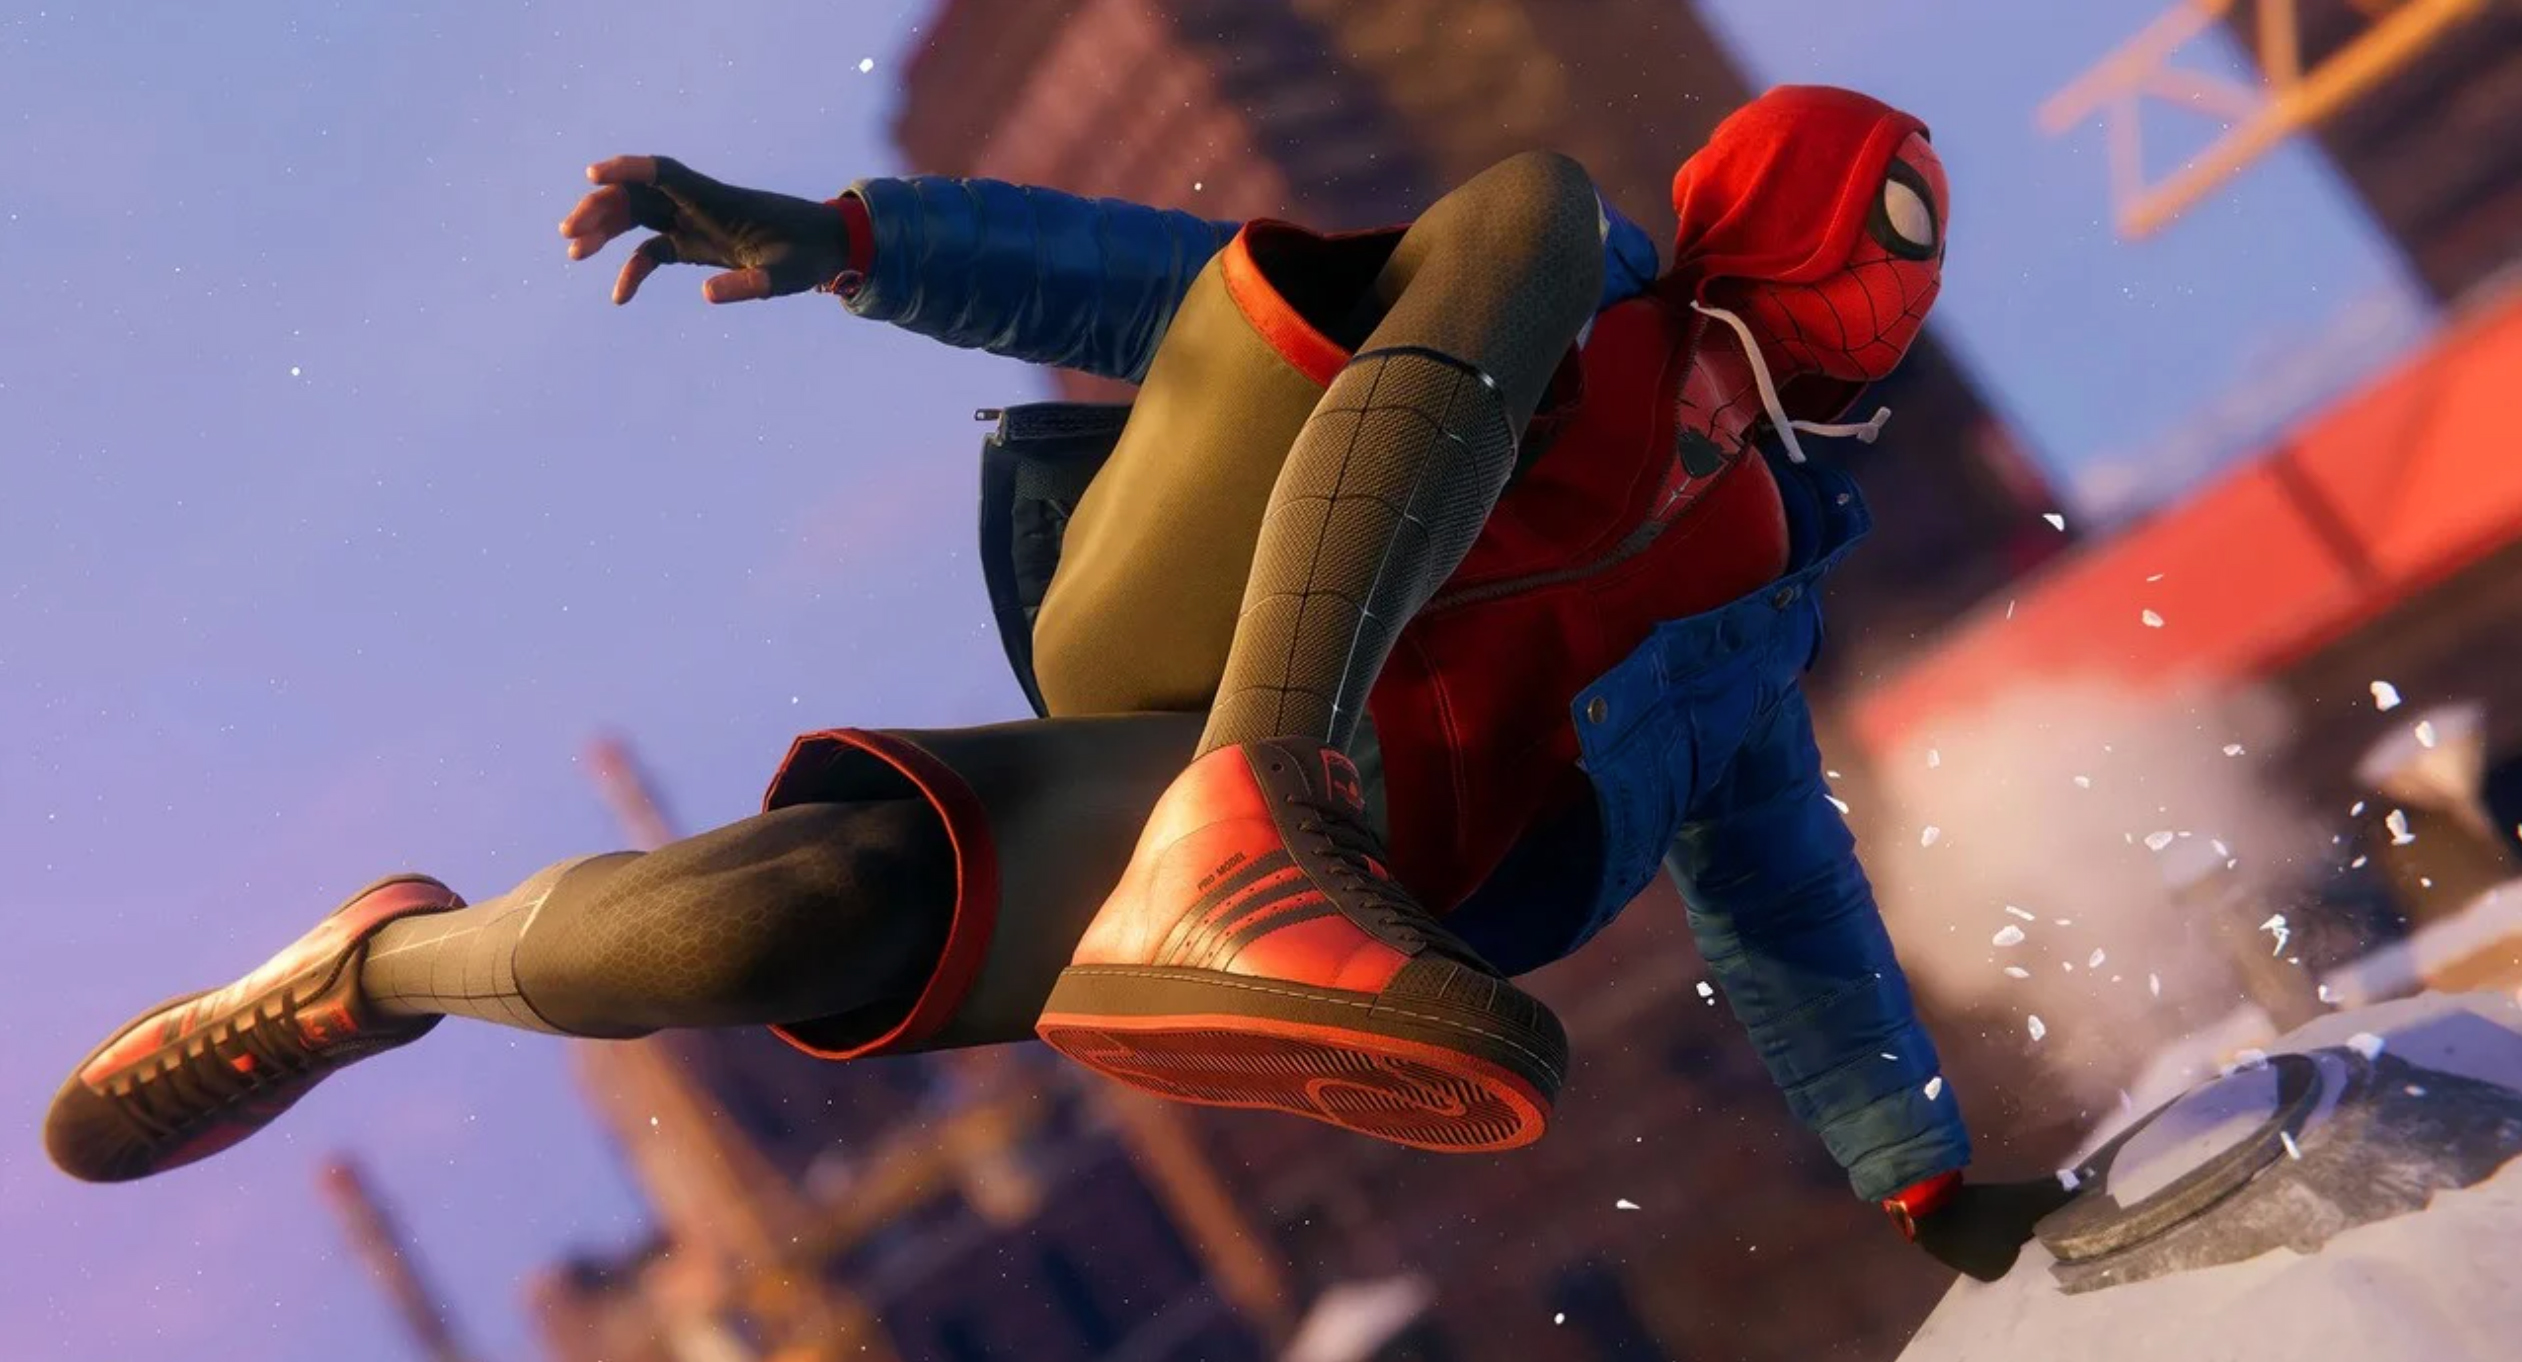 Spider-Man inclination of morality